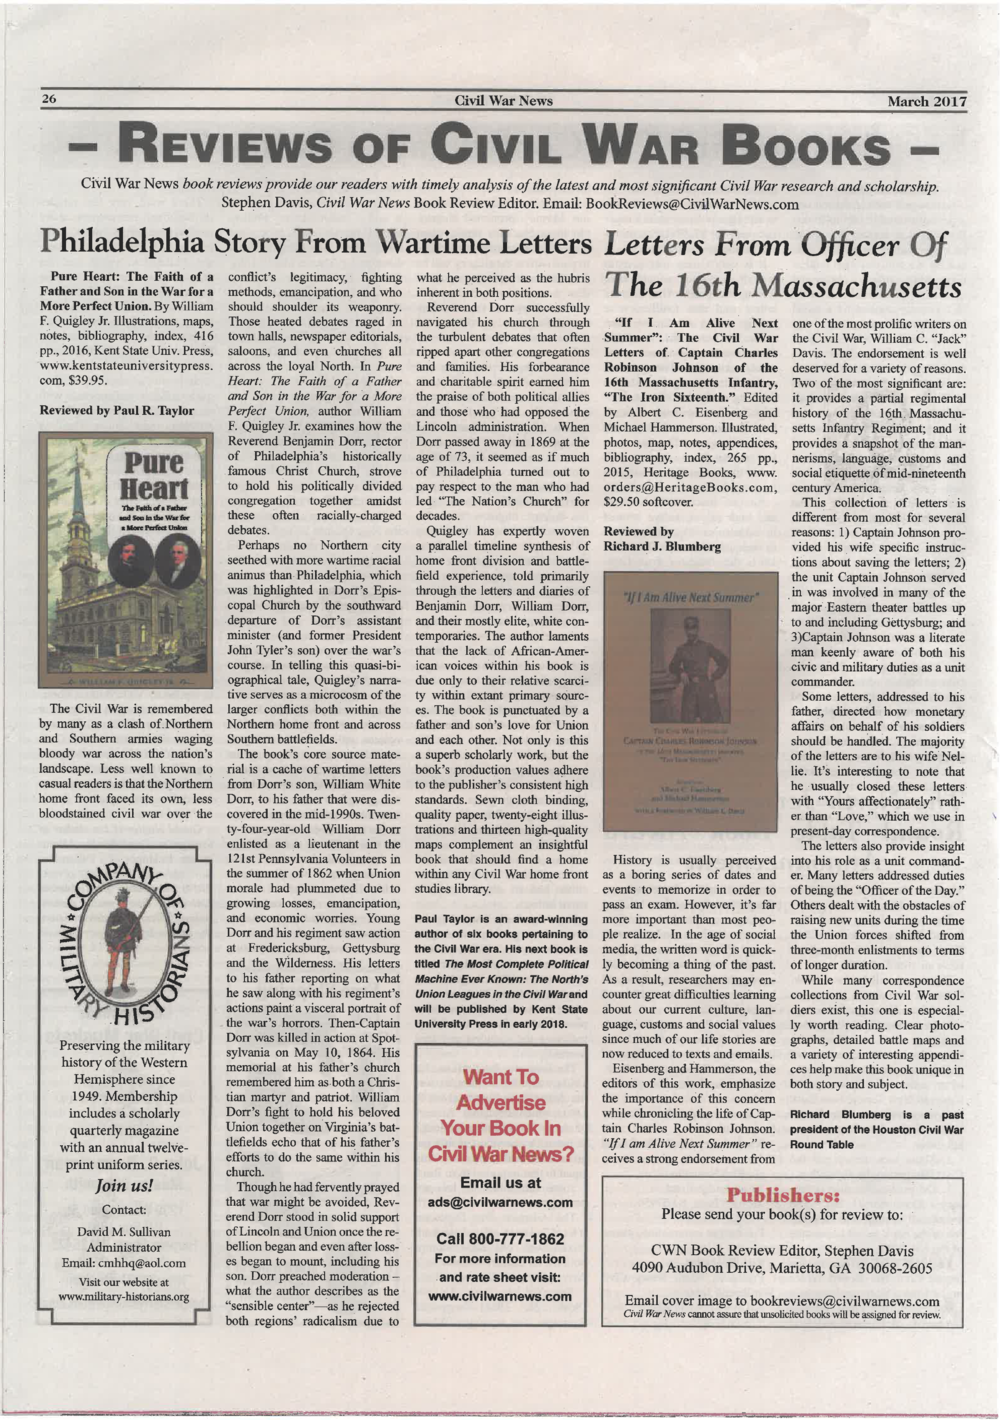 Read:  PURE HEART  reviewed in the March 2017 edition of the  Civil War News .   Click   to read the full review.